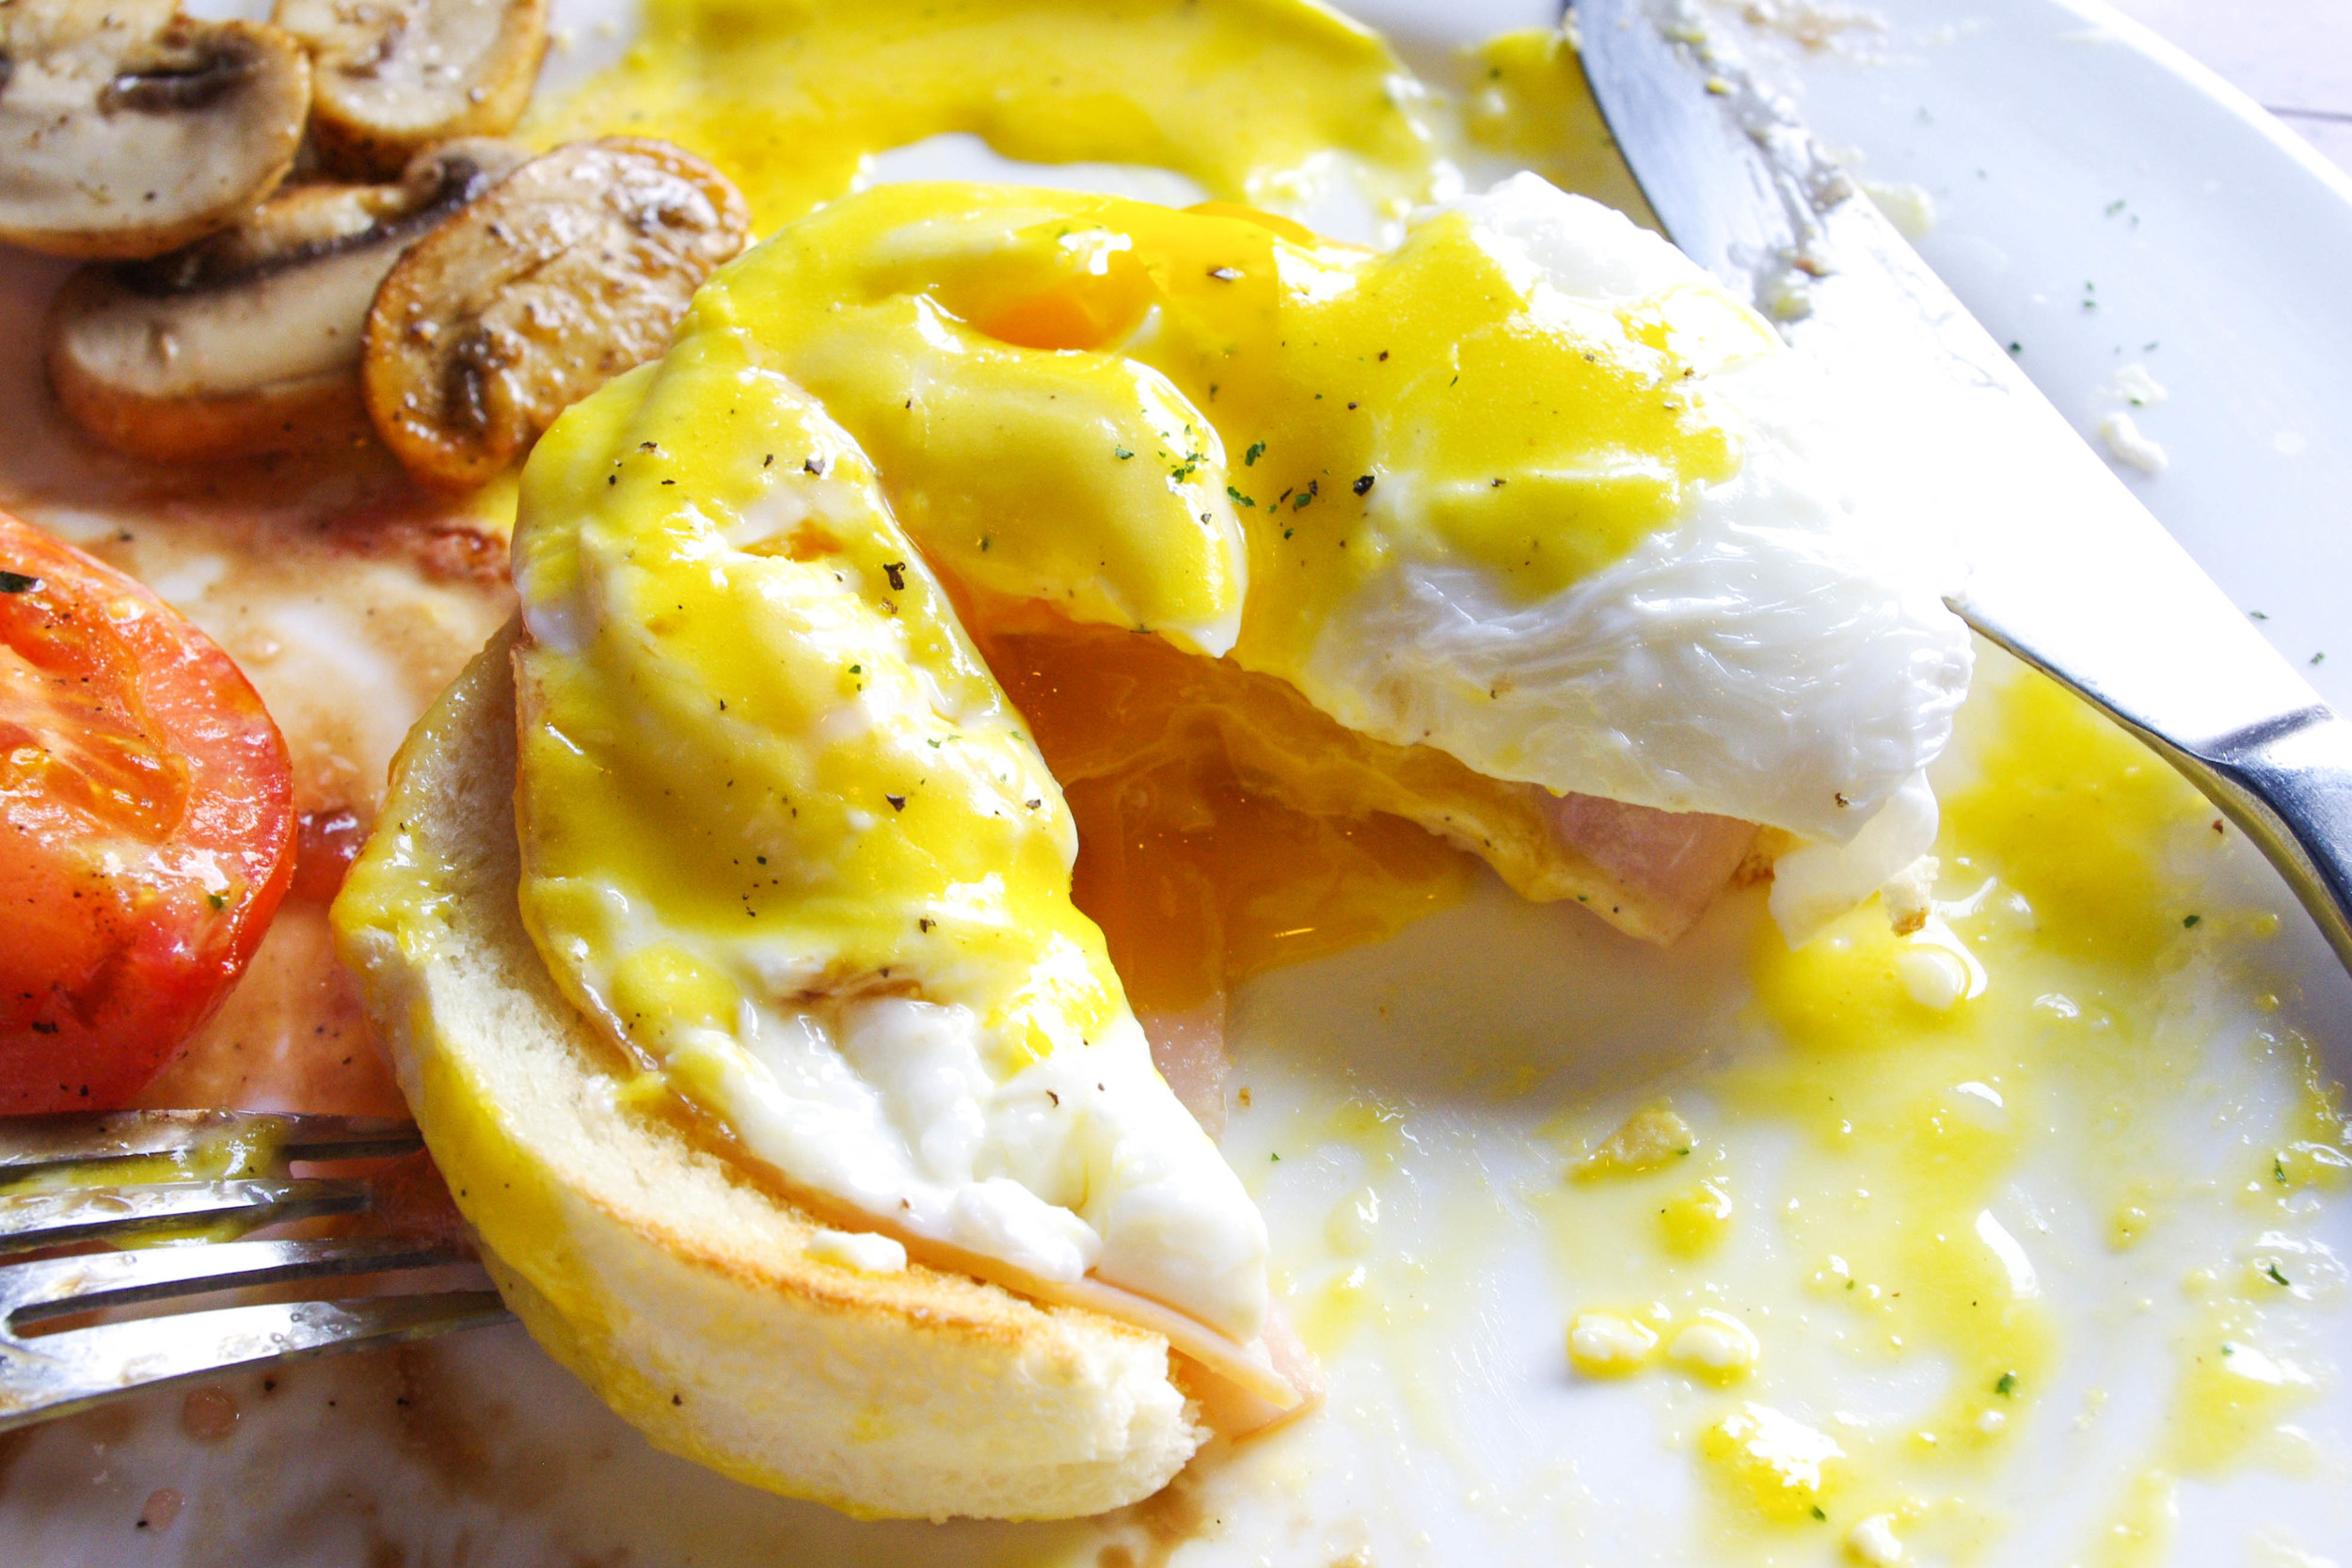 Wonderfully chewy English muffins, sliced ham, large poached eggs, and hollandaise sauce.